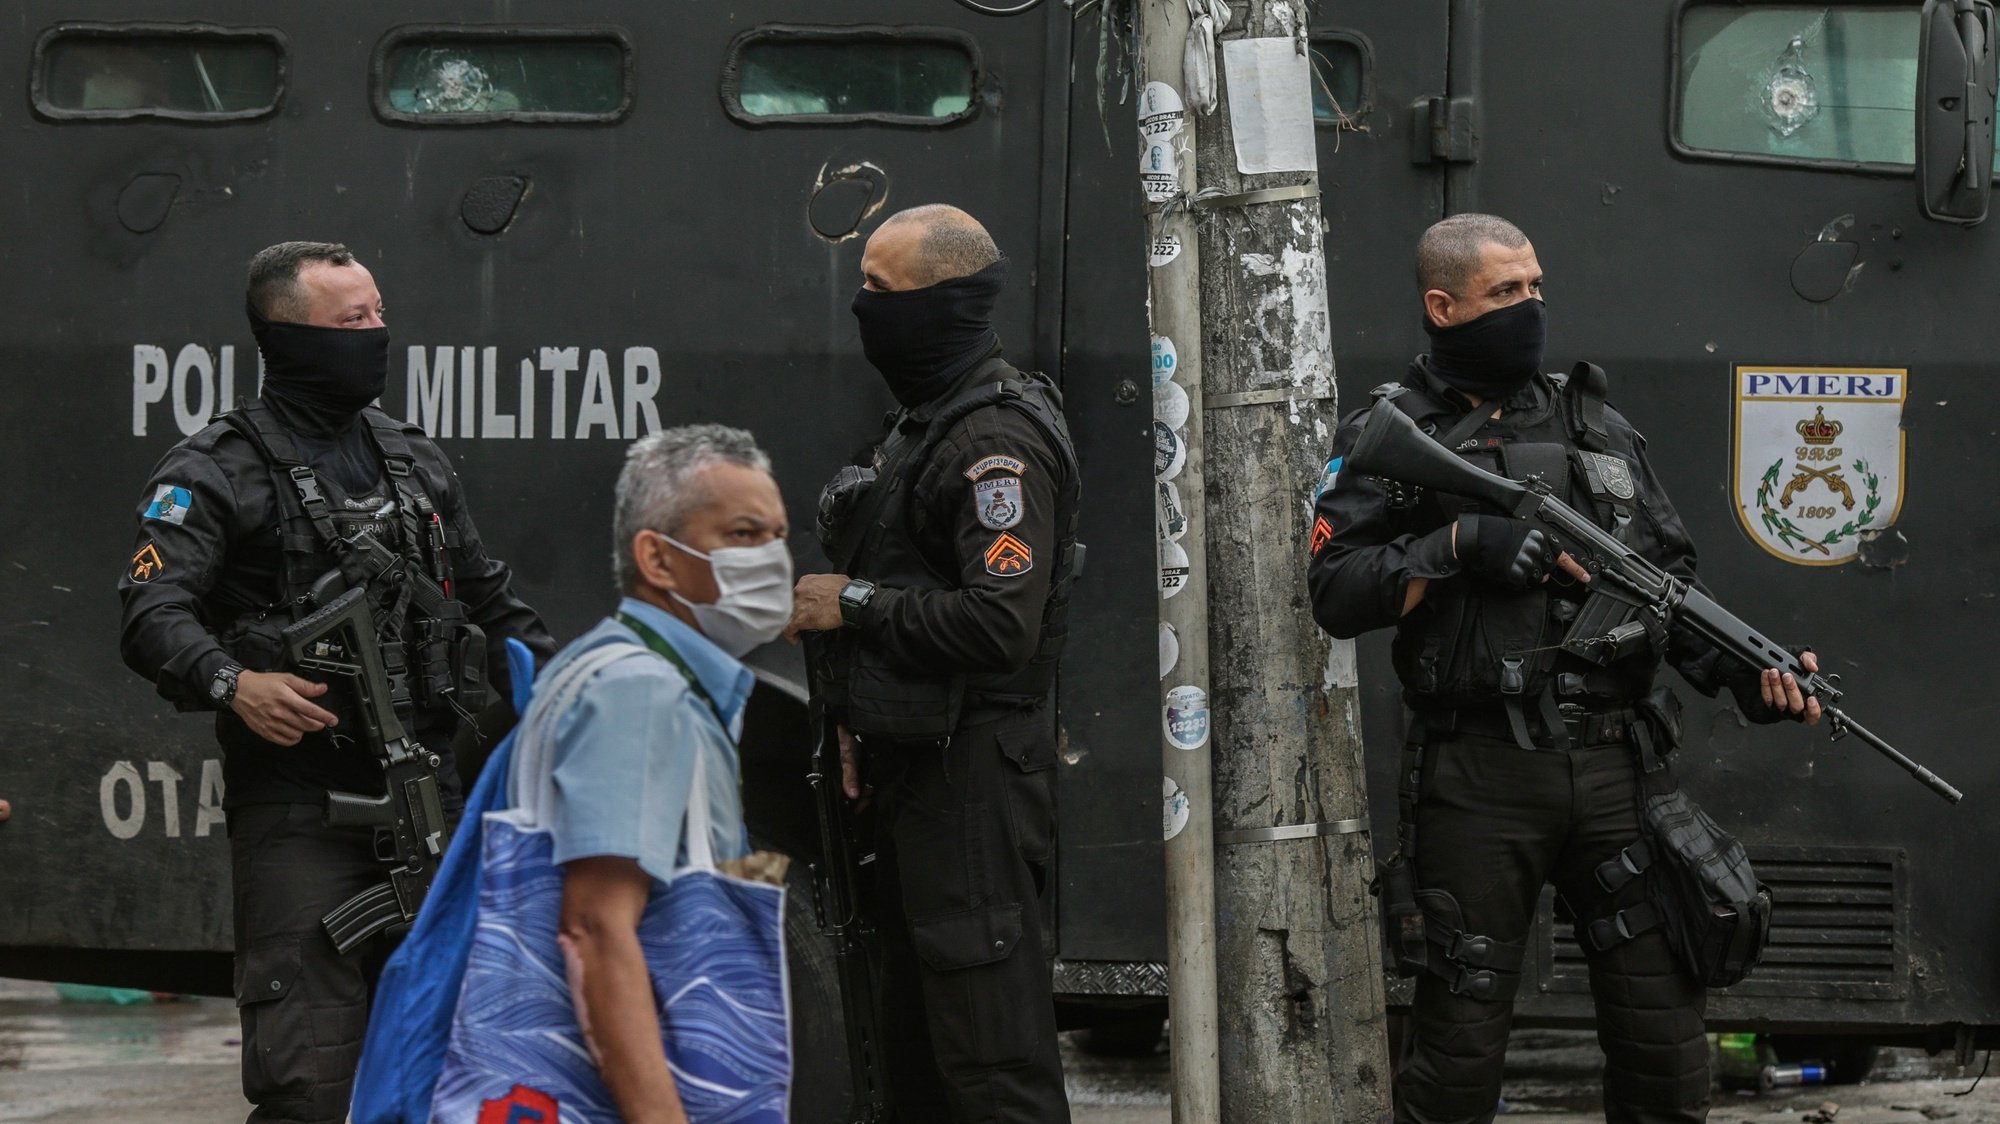 epa09183300 Military policemen stand on guard in Jacarezinho favela in Rio de Janeiro, Brazil, 07 May 2021, a day after 25 people died, including a police officer five more people were injured during a police operation against a gang of drug traffickers in the favela.  EPA/ANDRE COELHO